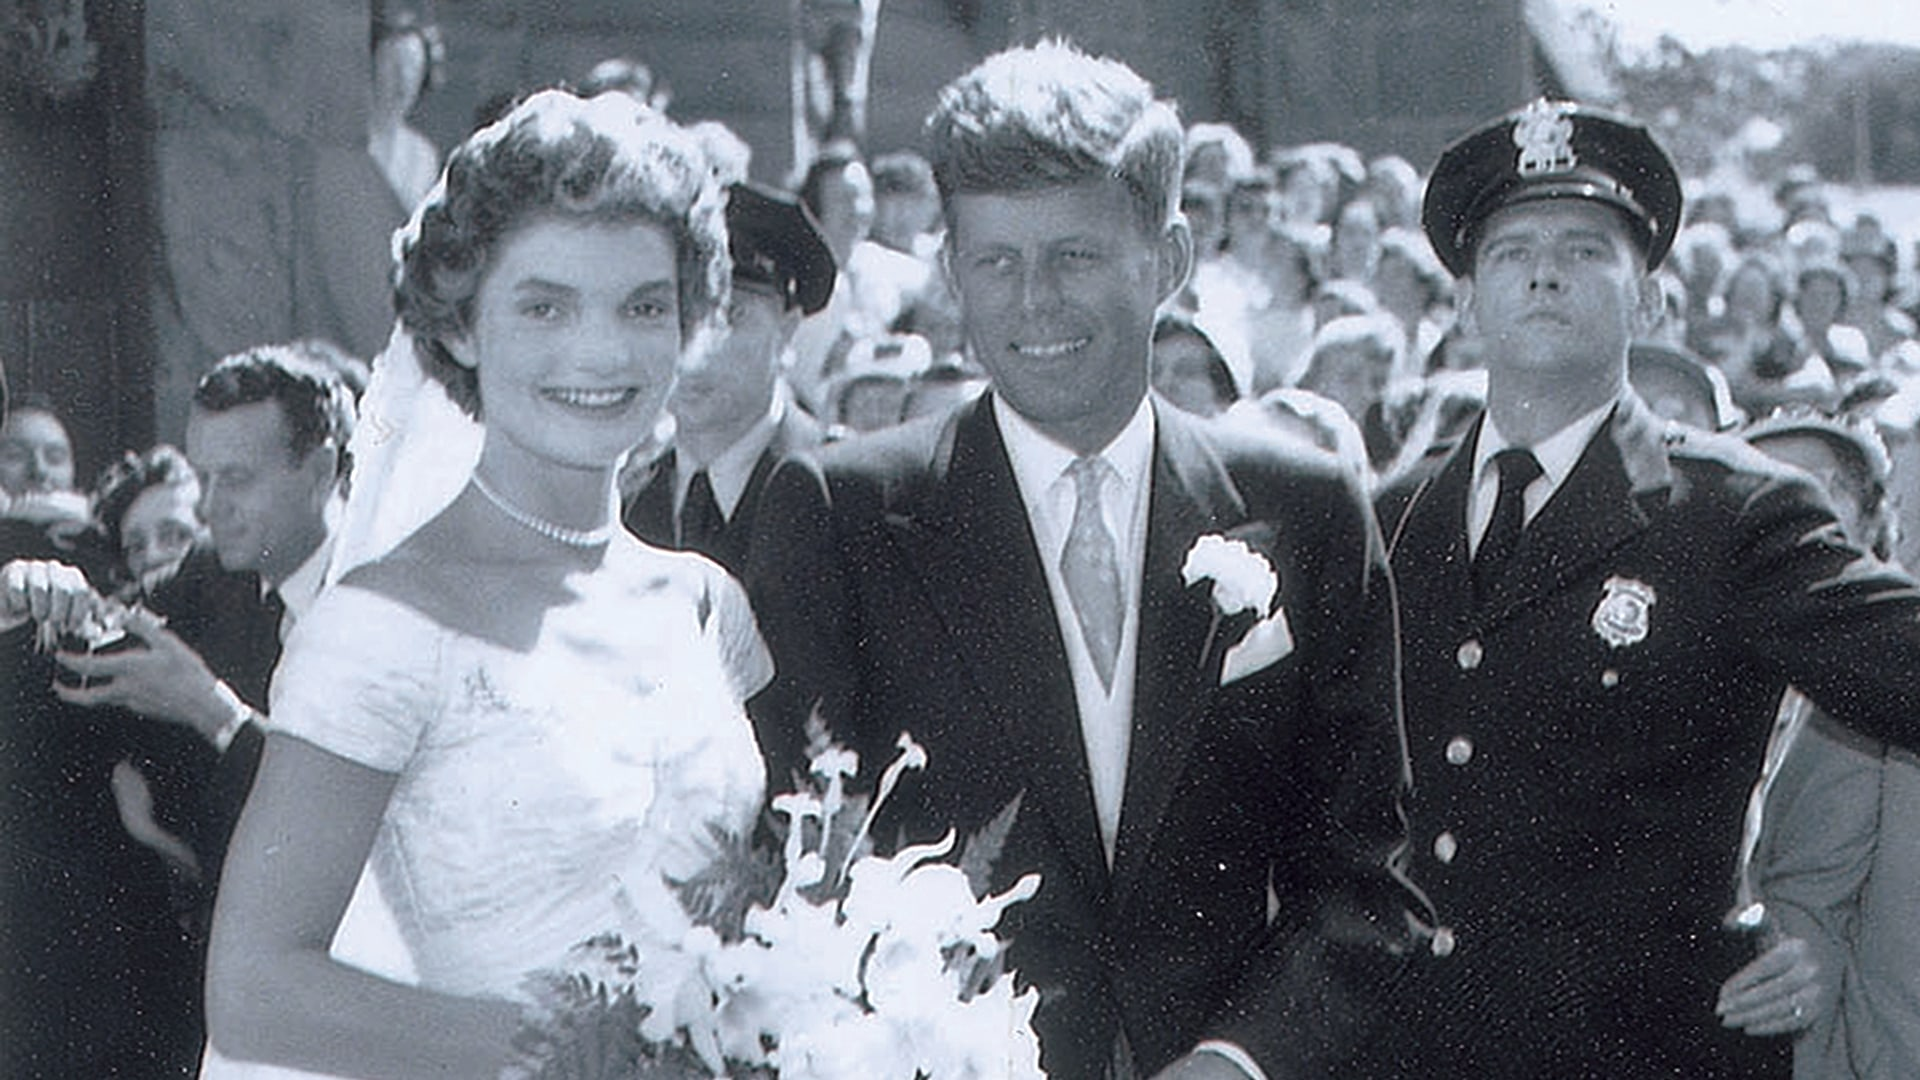 unseen jfkjackie kennedy wedding photos up for auction